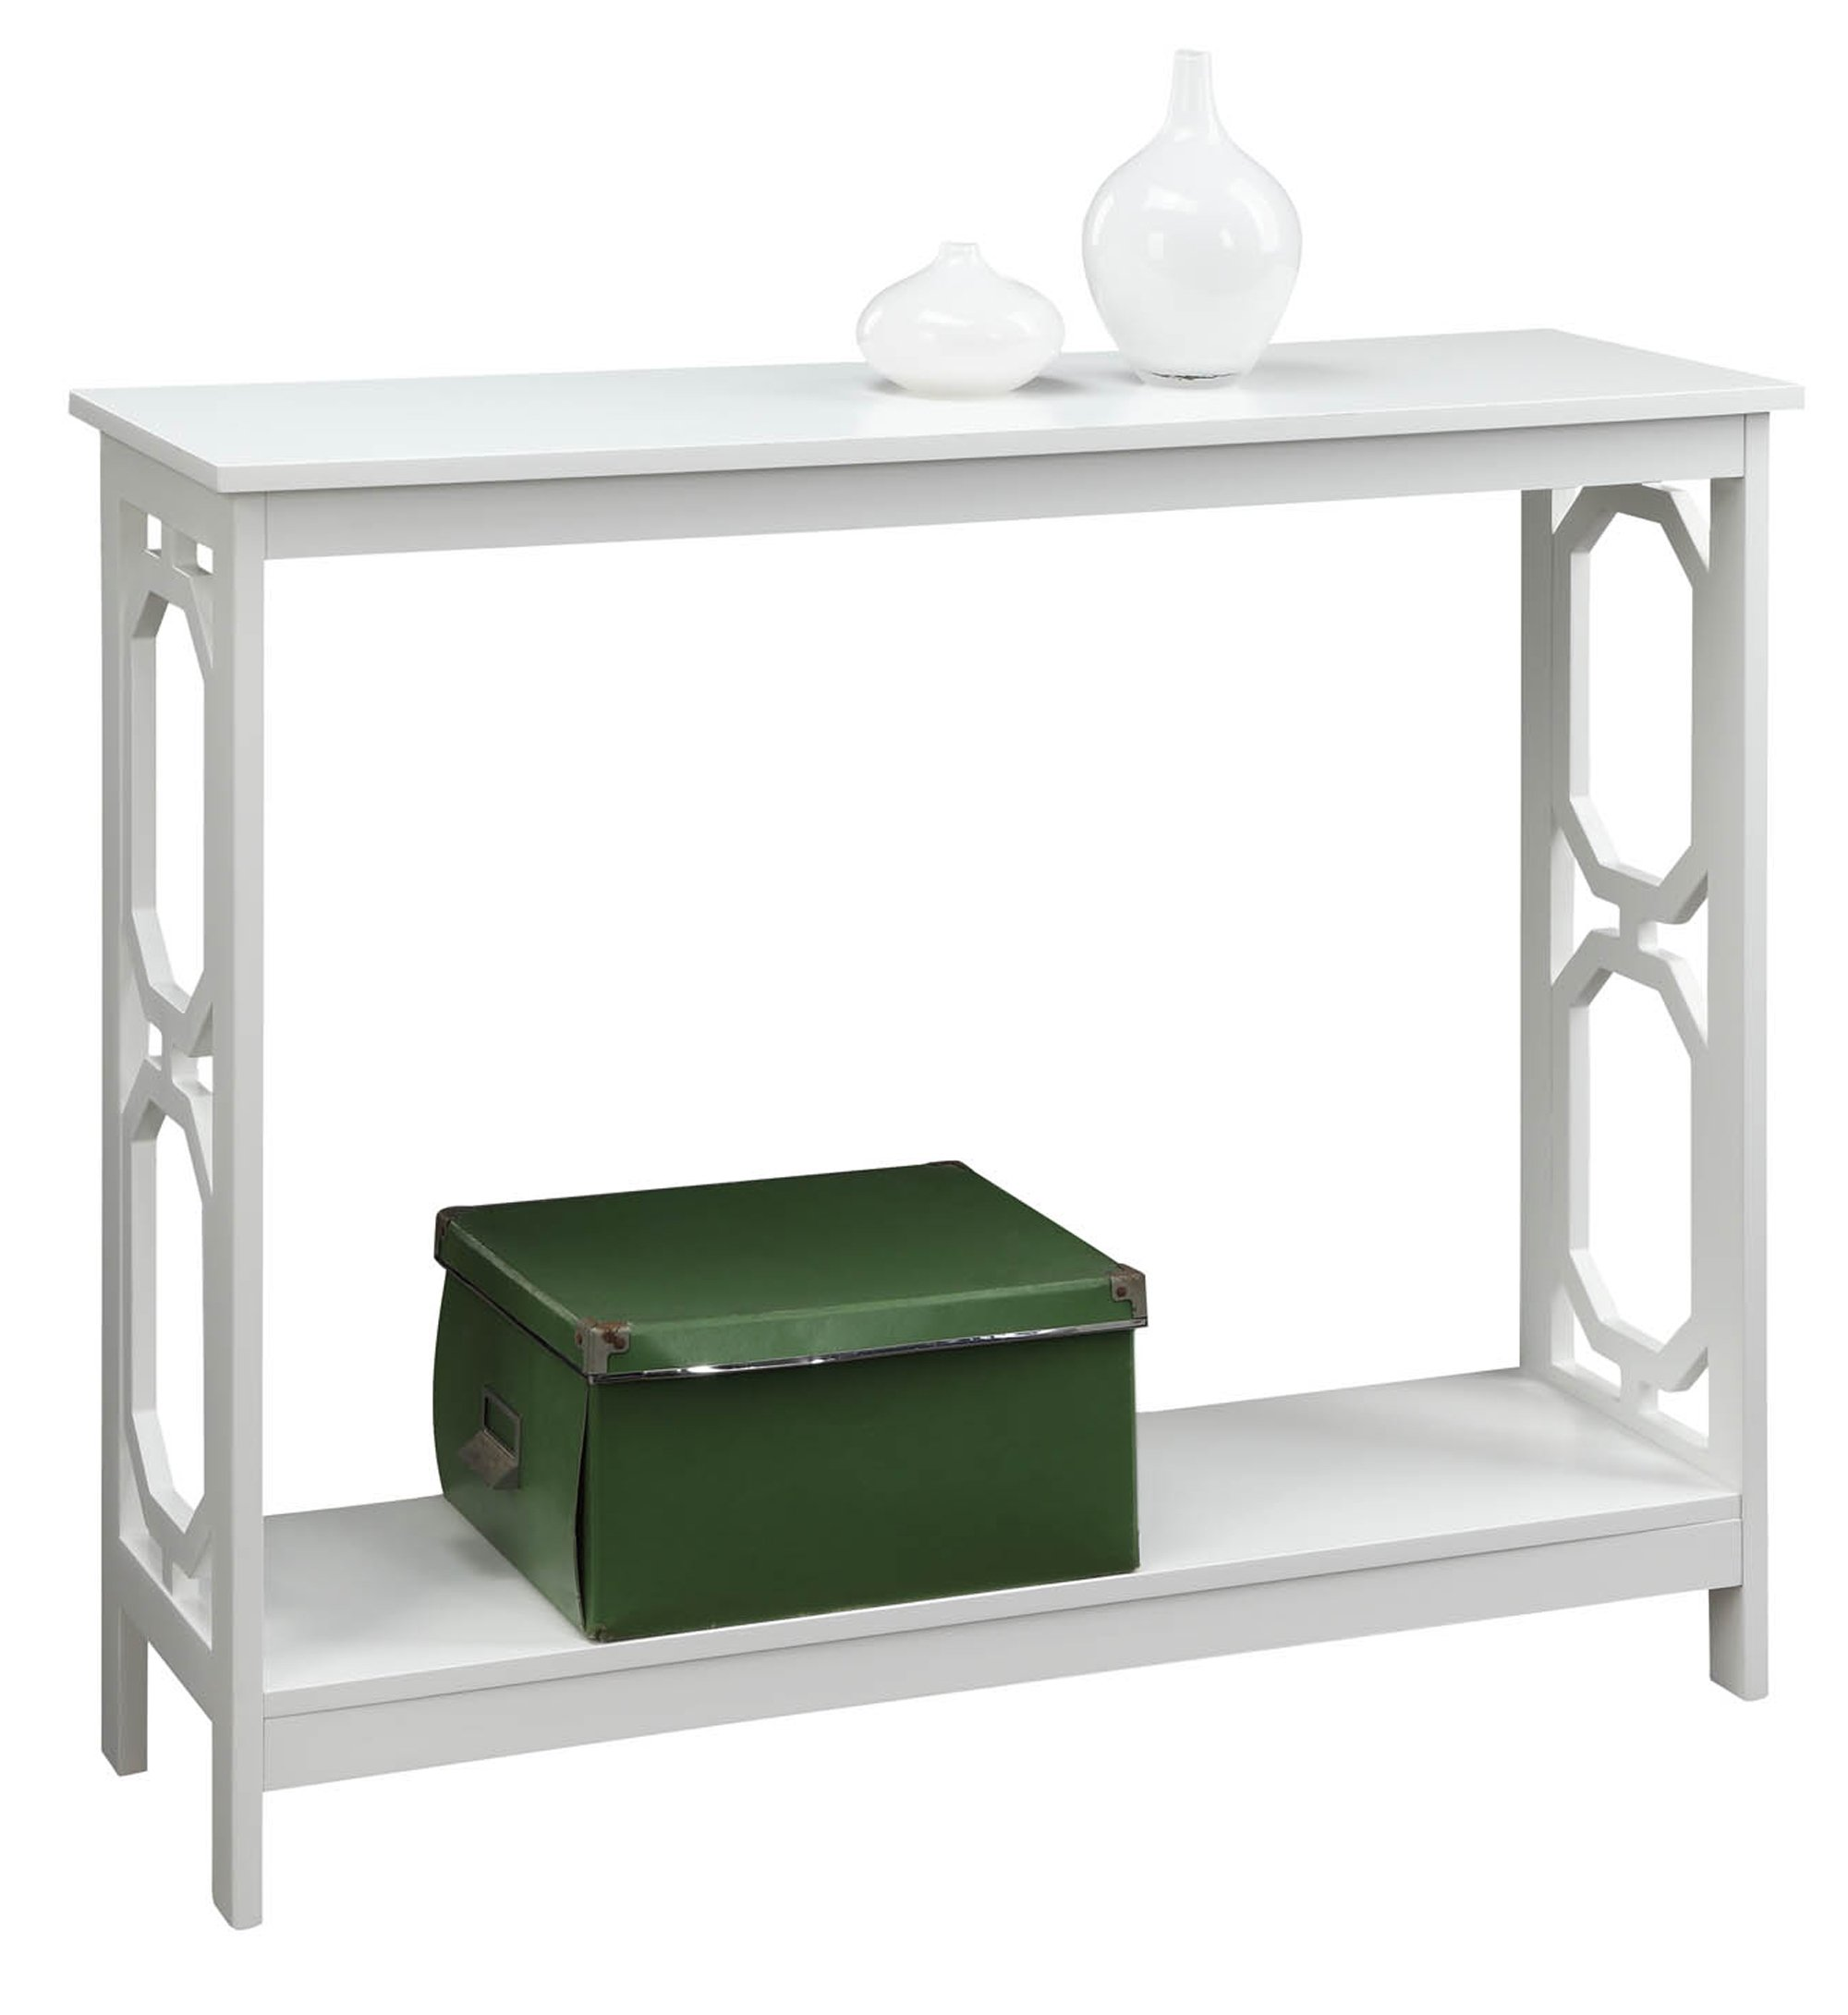 Convenience Concepts Omega Console Table, White by Convenience Concepts (Image #2)